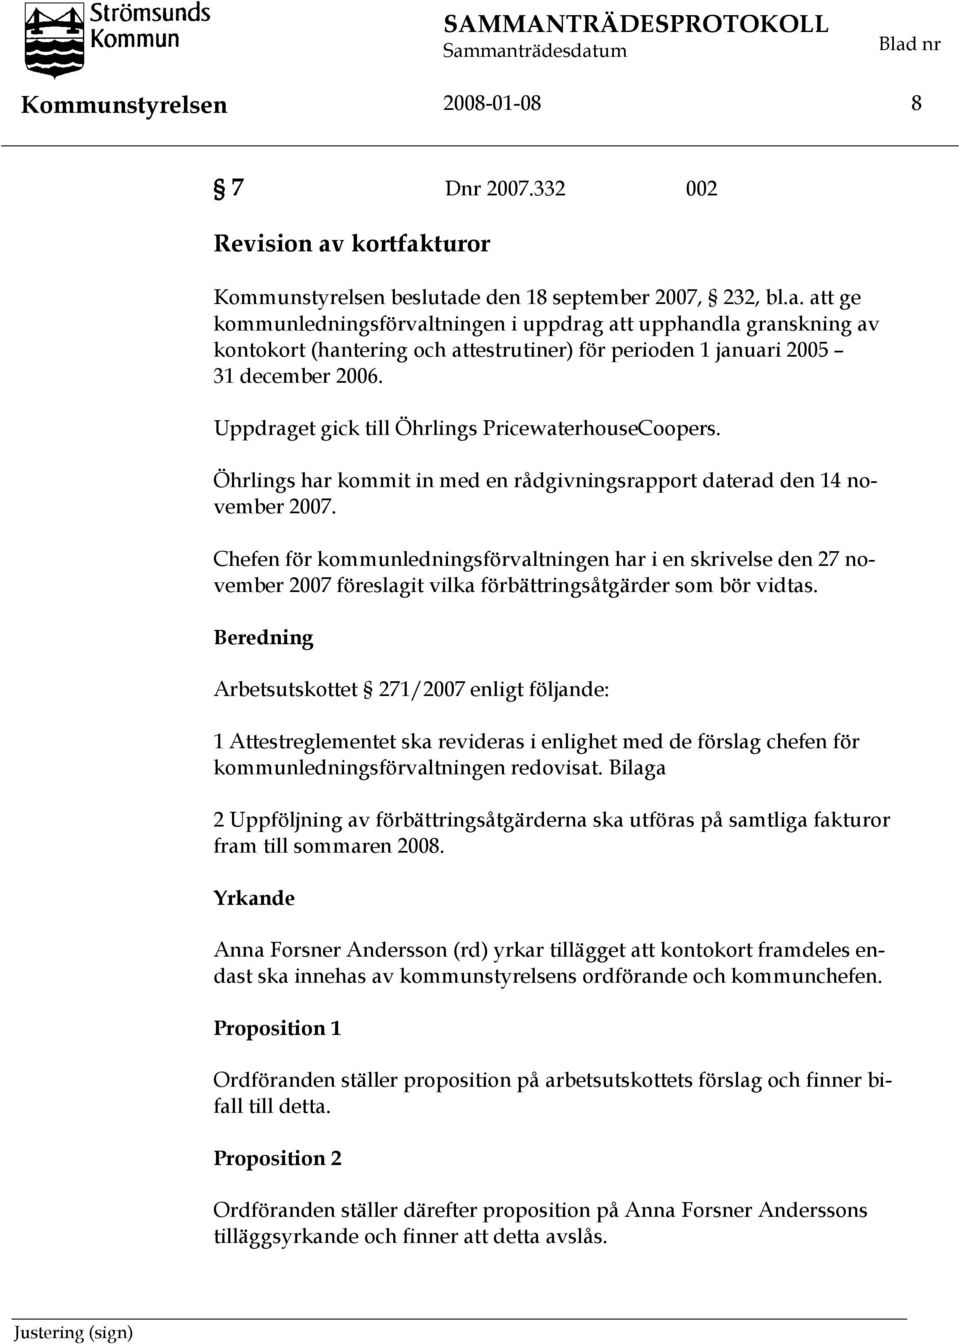 Uppdraget gick till Öhrlings PricewaterhouseCoopers. Öhrlings har kommit in med en rådgivningsrapport daterad den 14 november 2007.